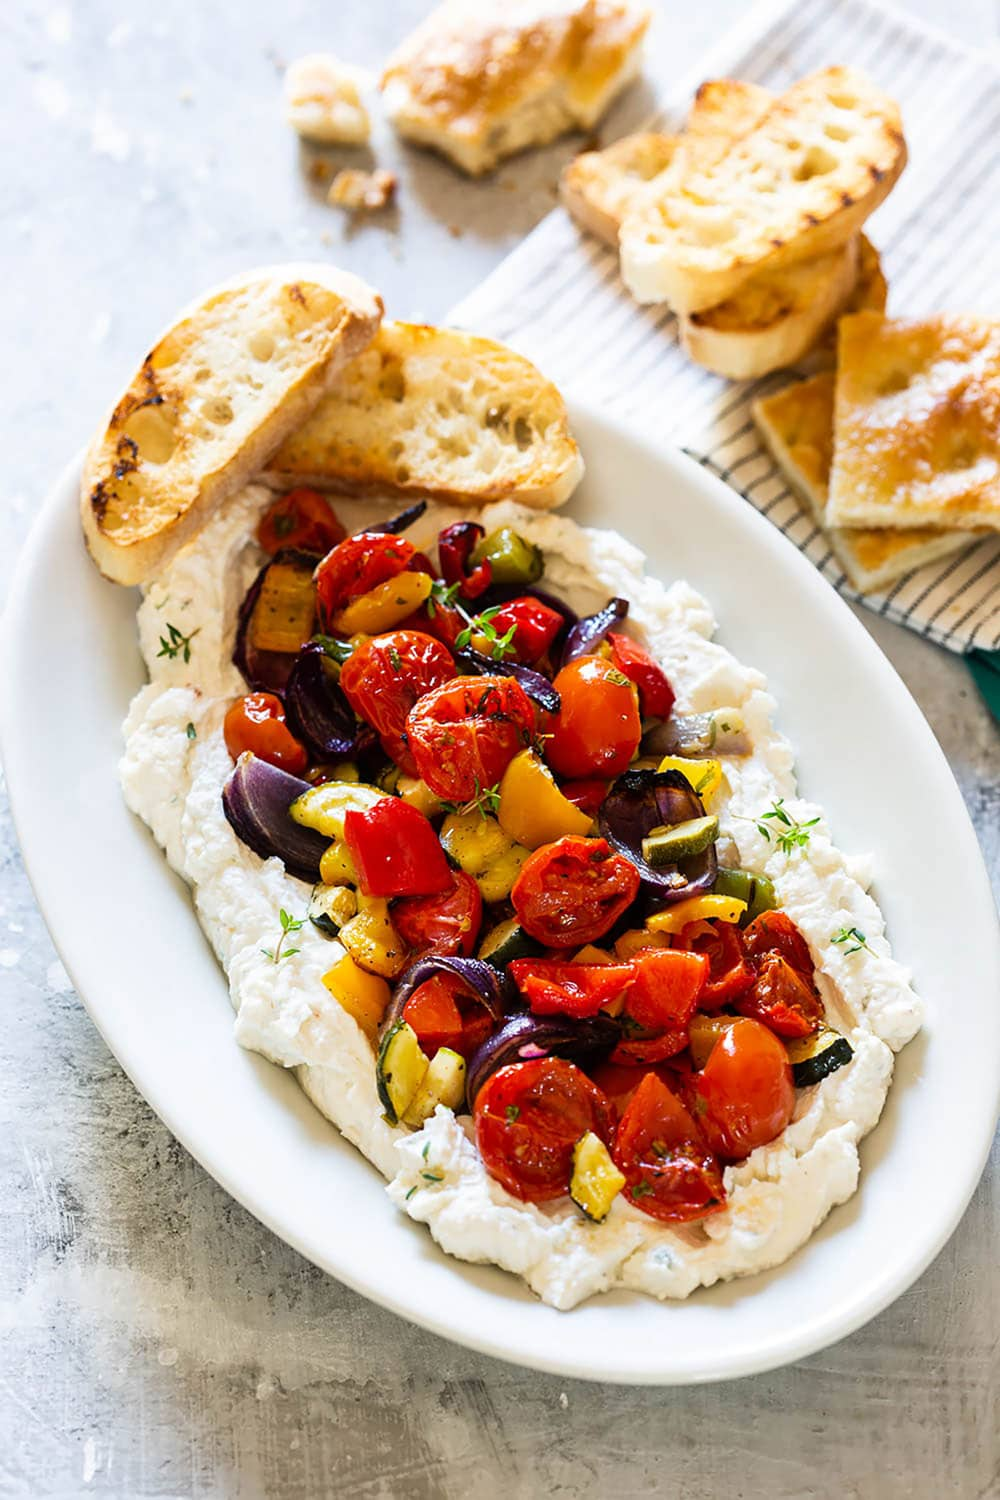 A platter of whipped ricotta with roasted vegetables on top.